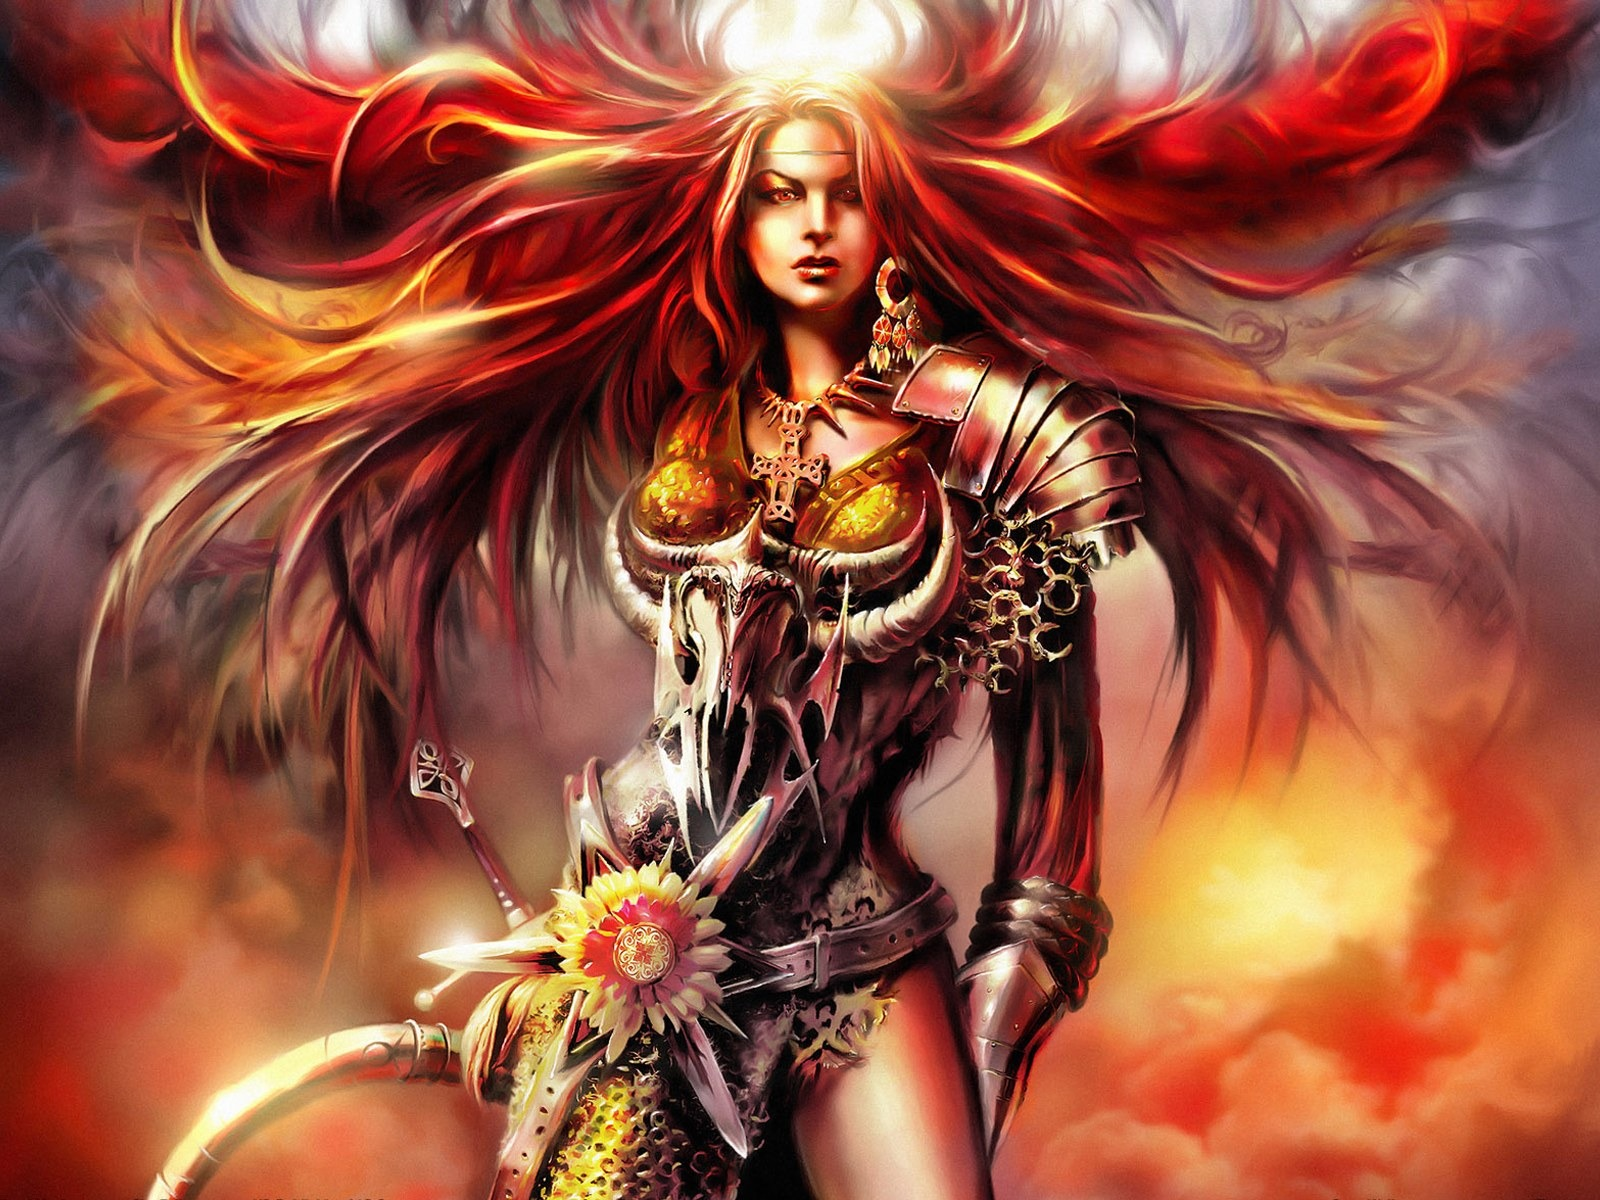 Beautiful Women Wallpaper Fantasy Illustrator Blood Magic